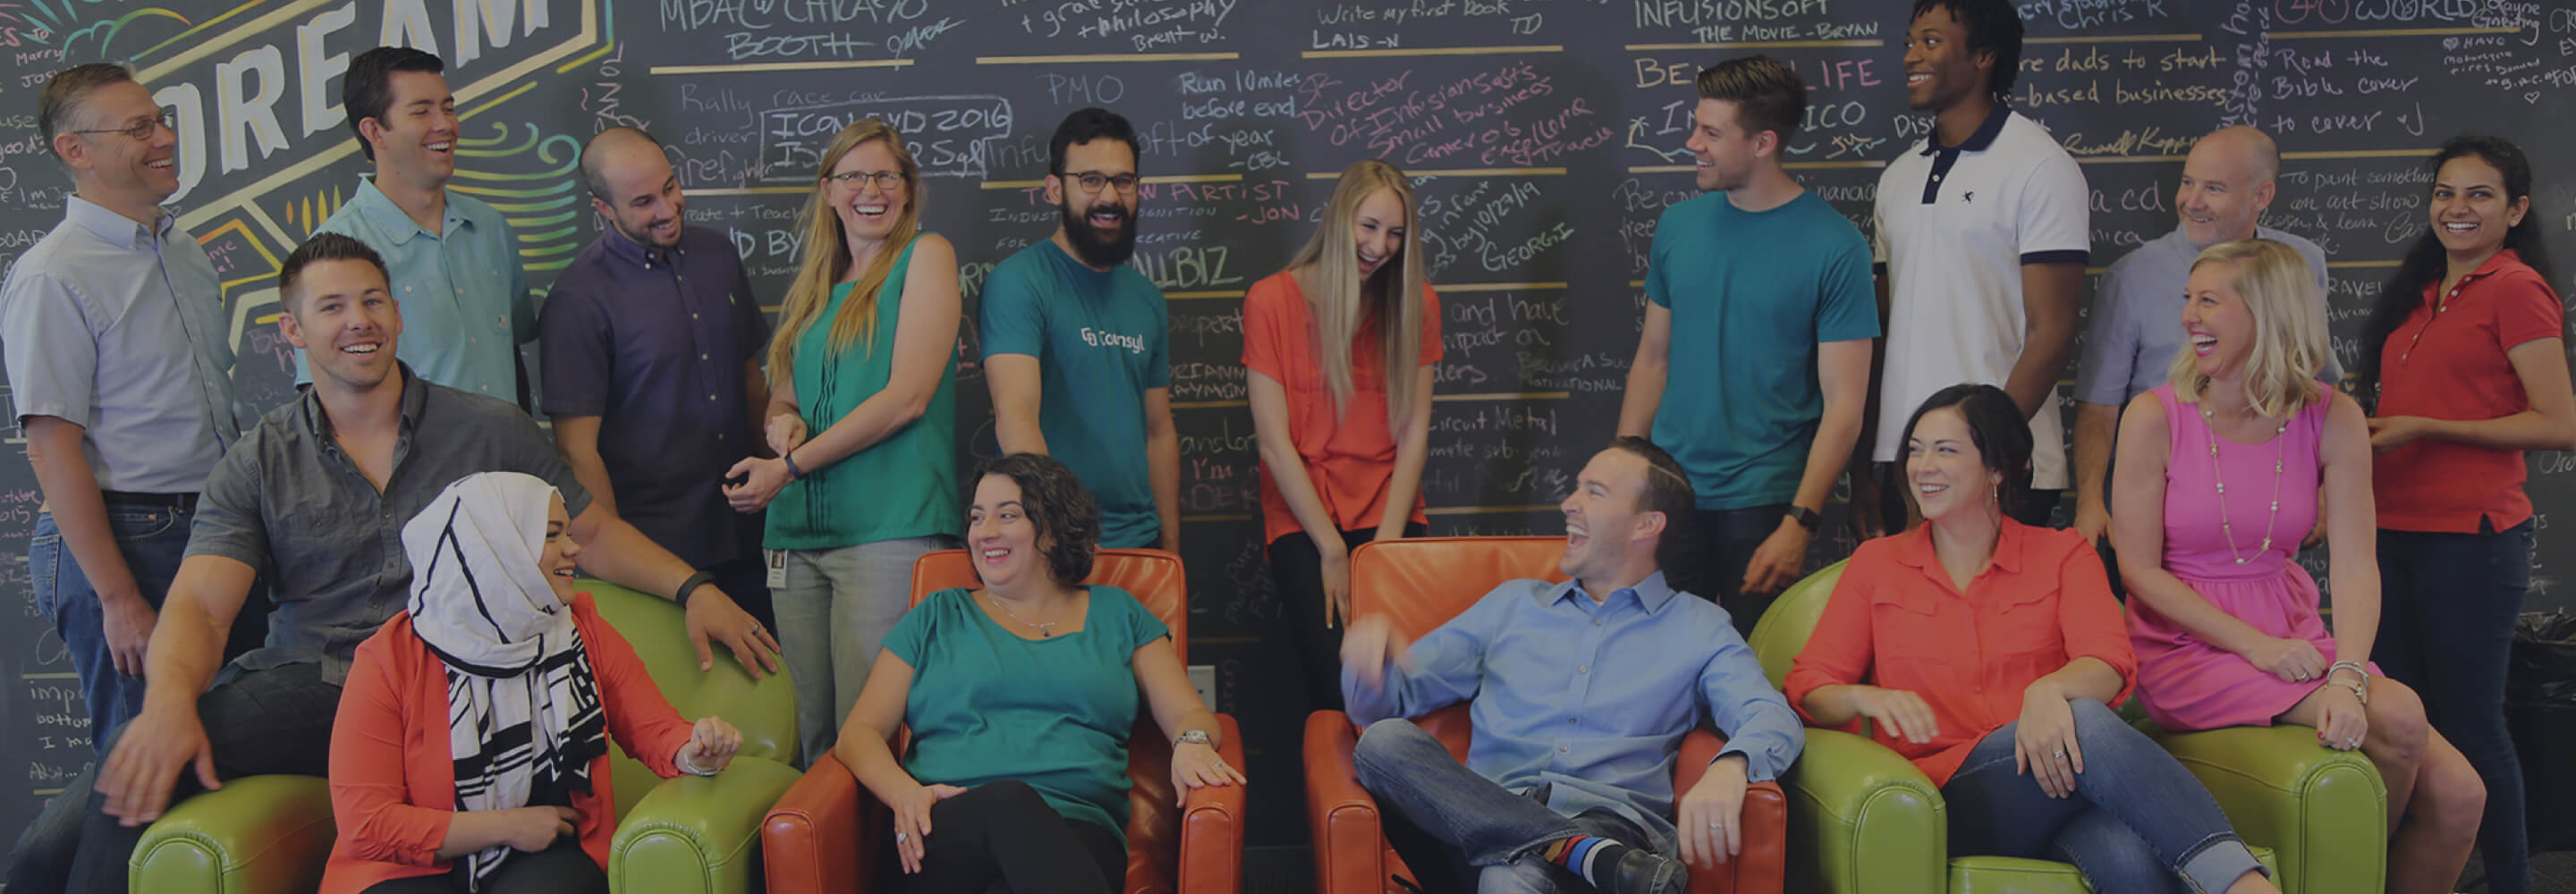 Infusionsoft Employees in front of the Dream Wall